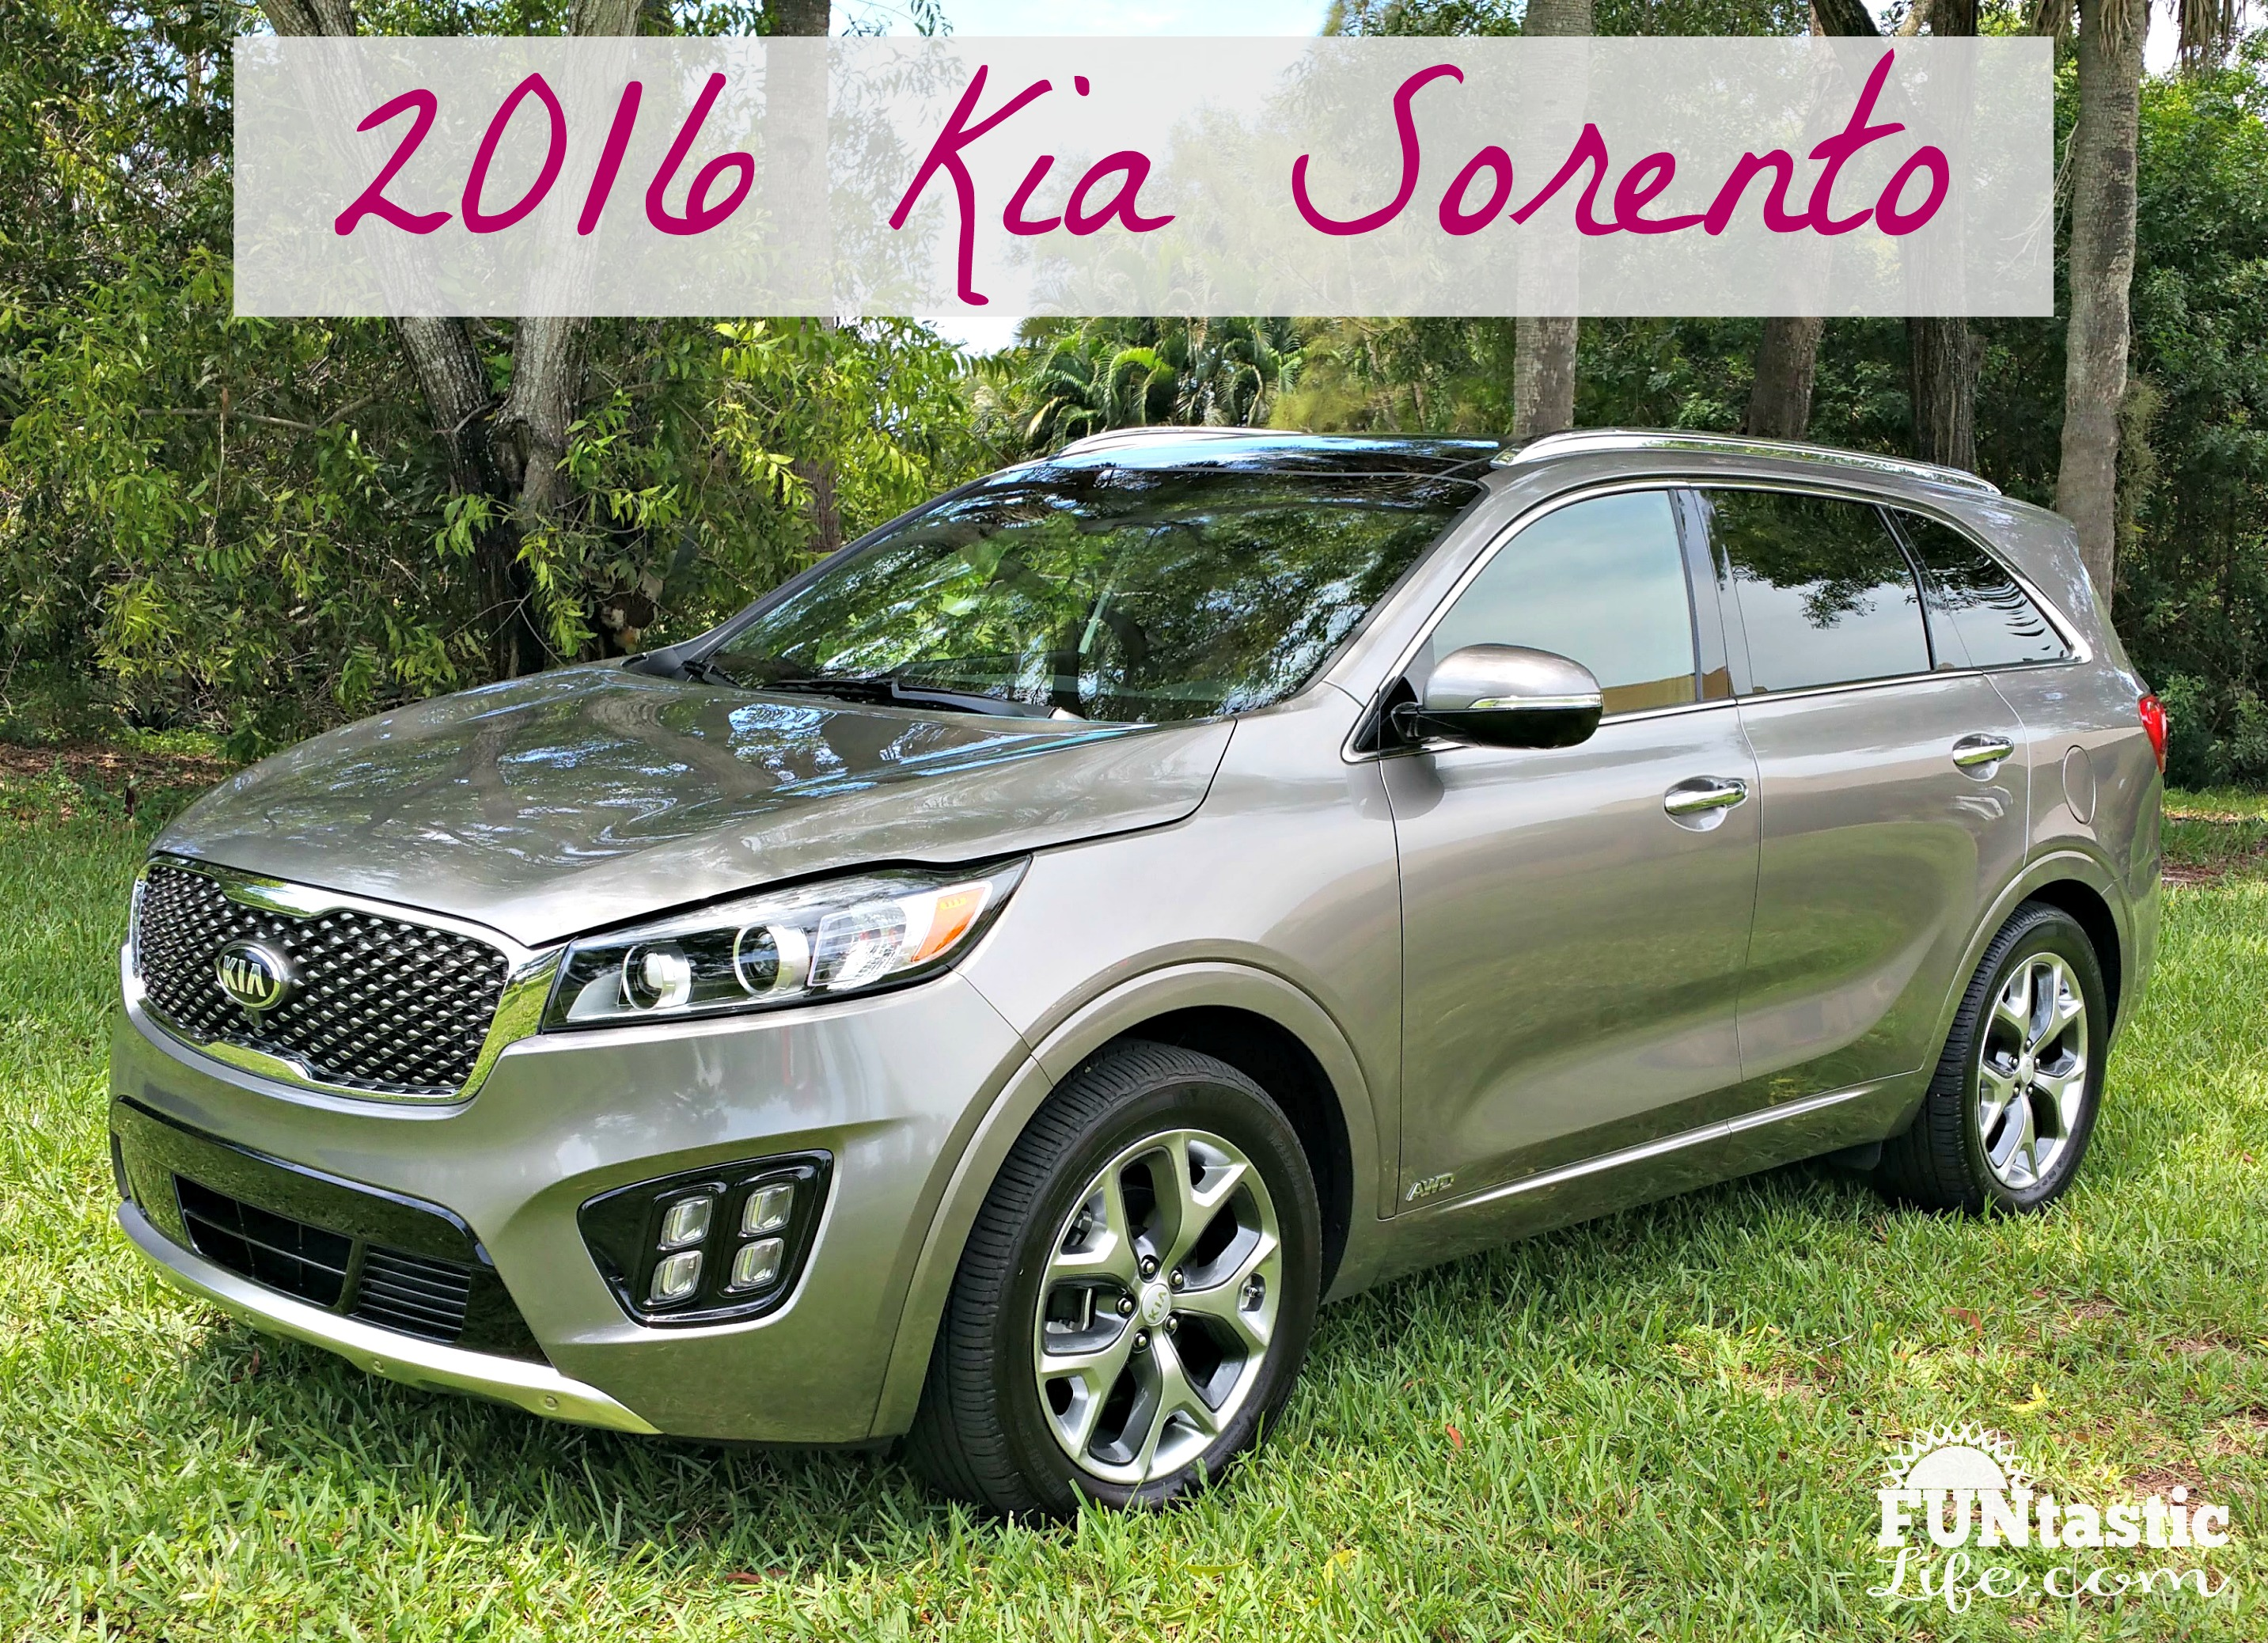 kia exterior auto show gdi youtube sorrento t watch detroit sxl and sorento walkaround interior